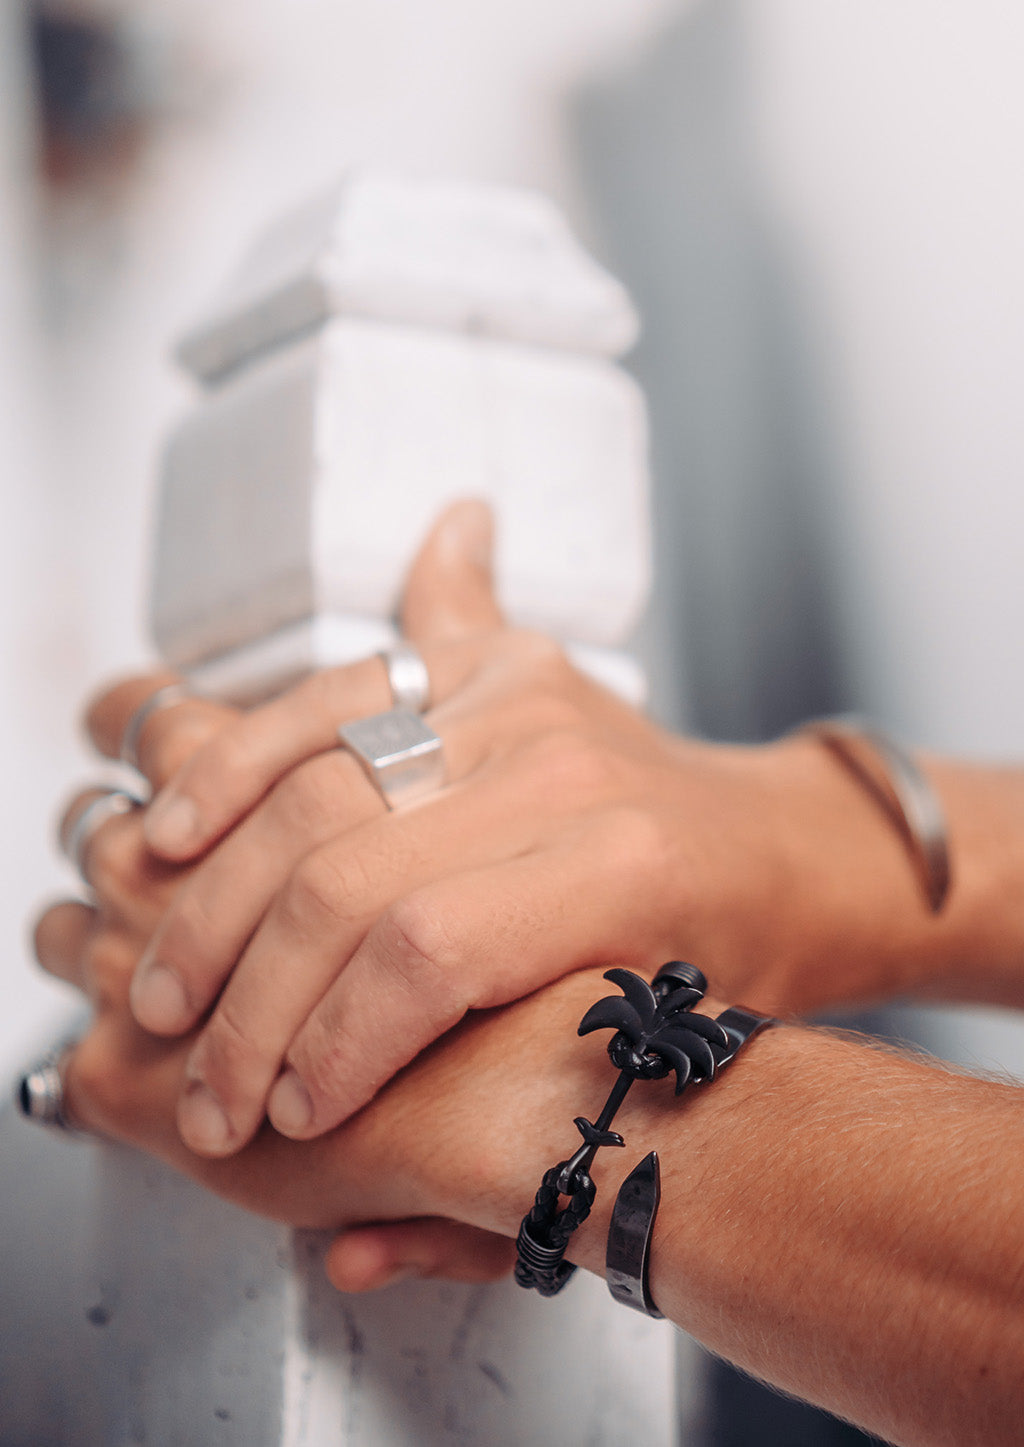 Pitch Black - Palm anchor bracelet with black leather. Lifestyle photo holding hands.